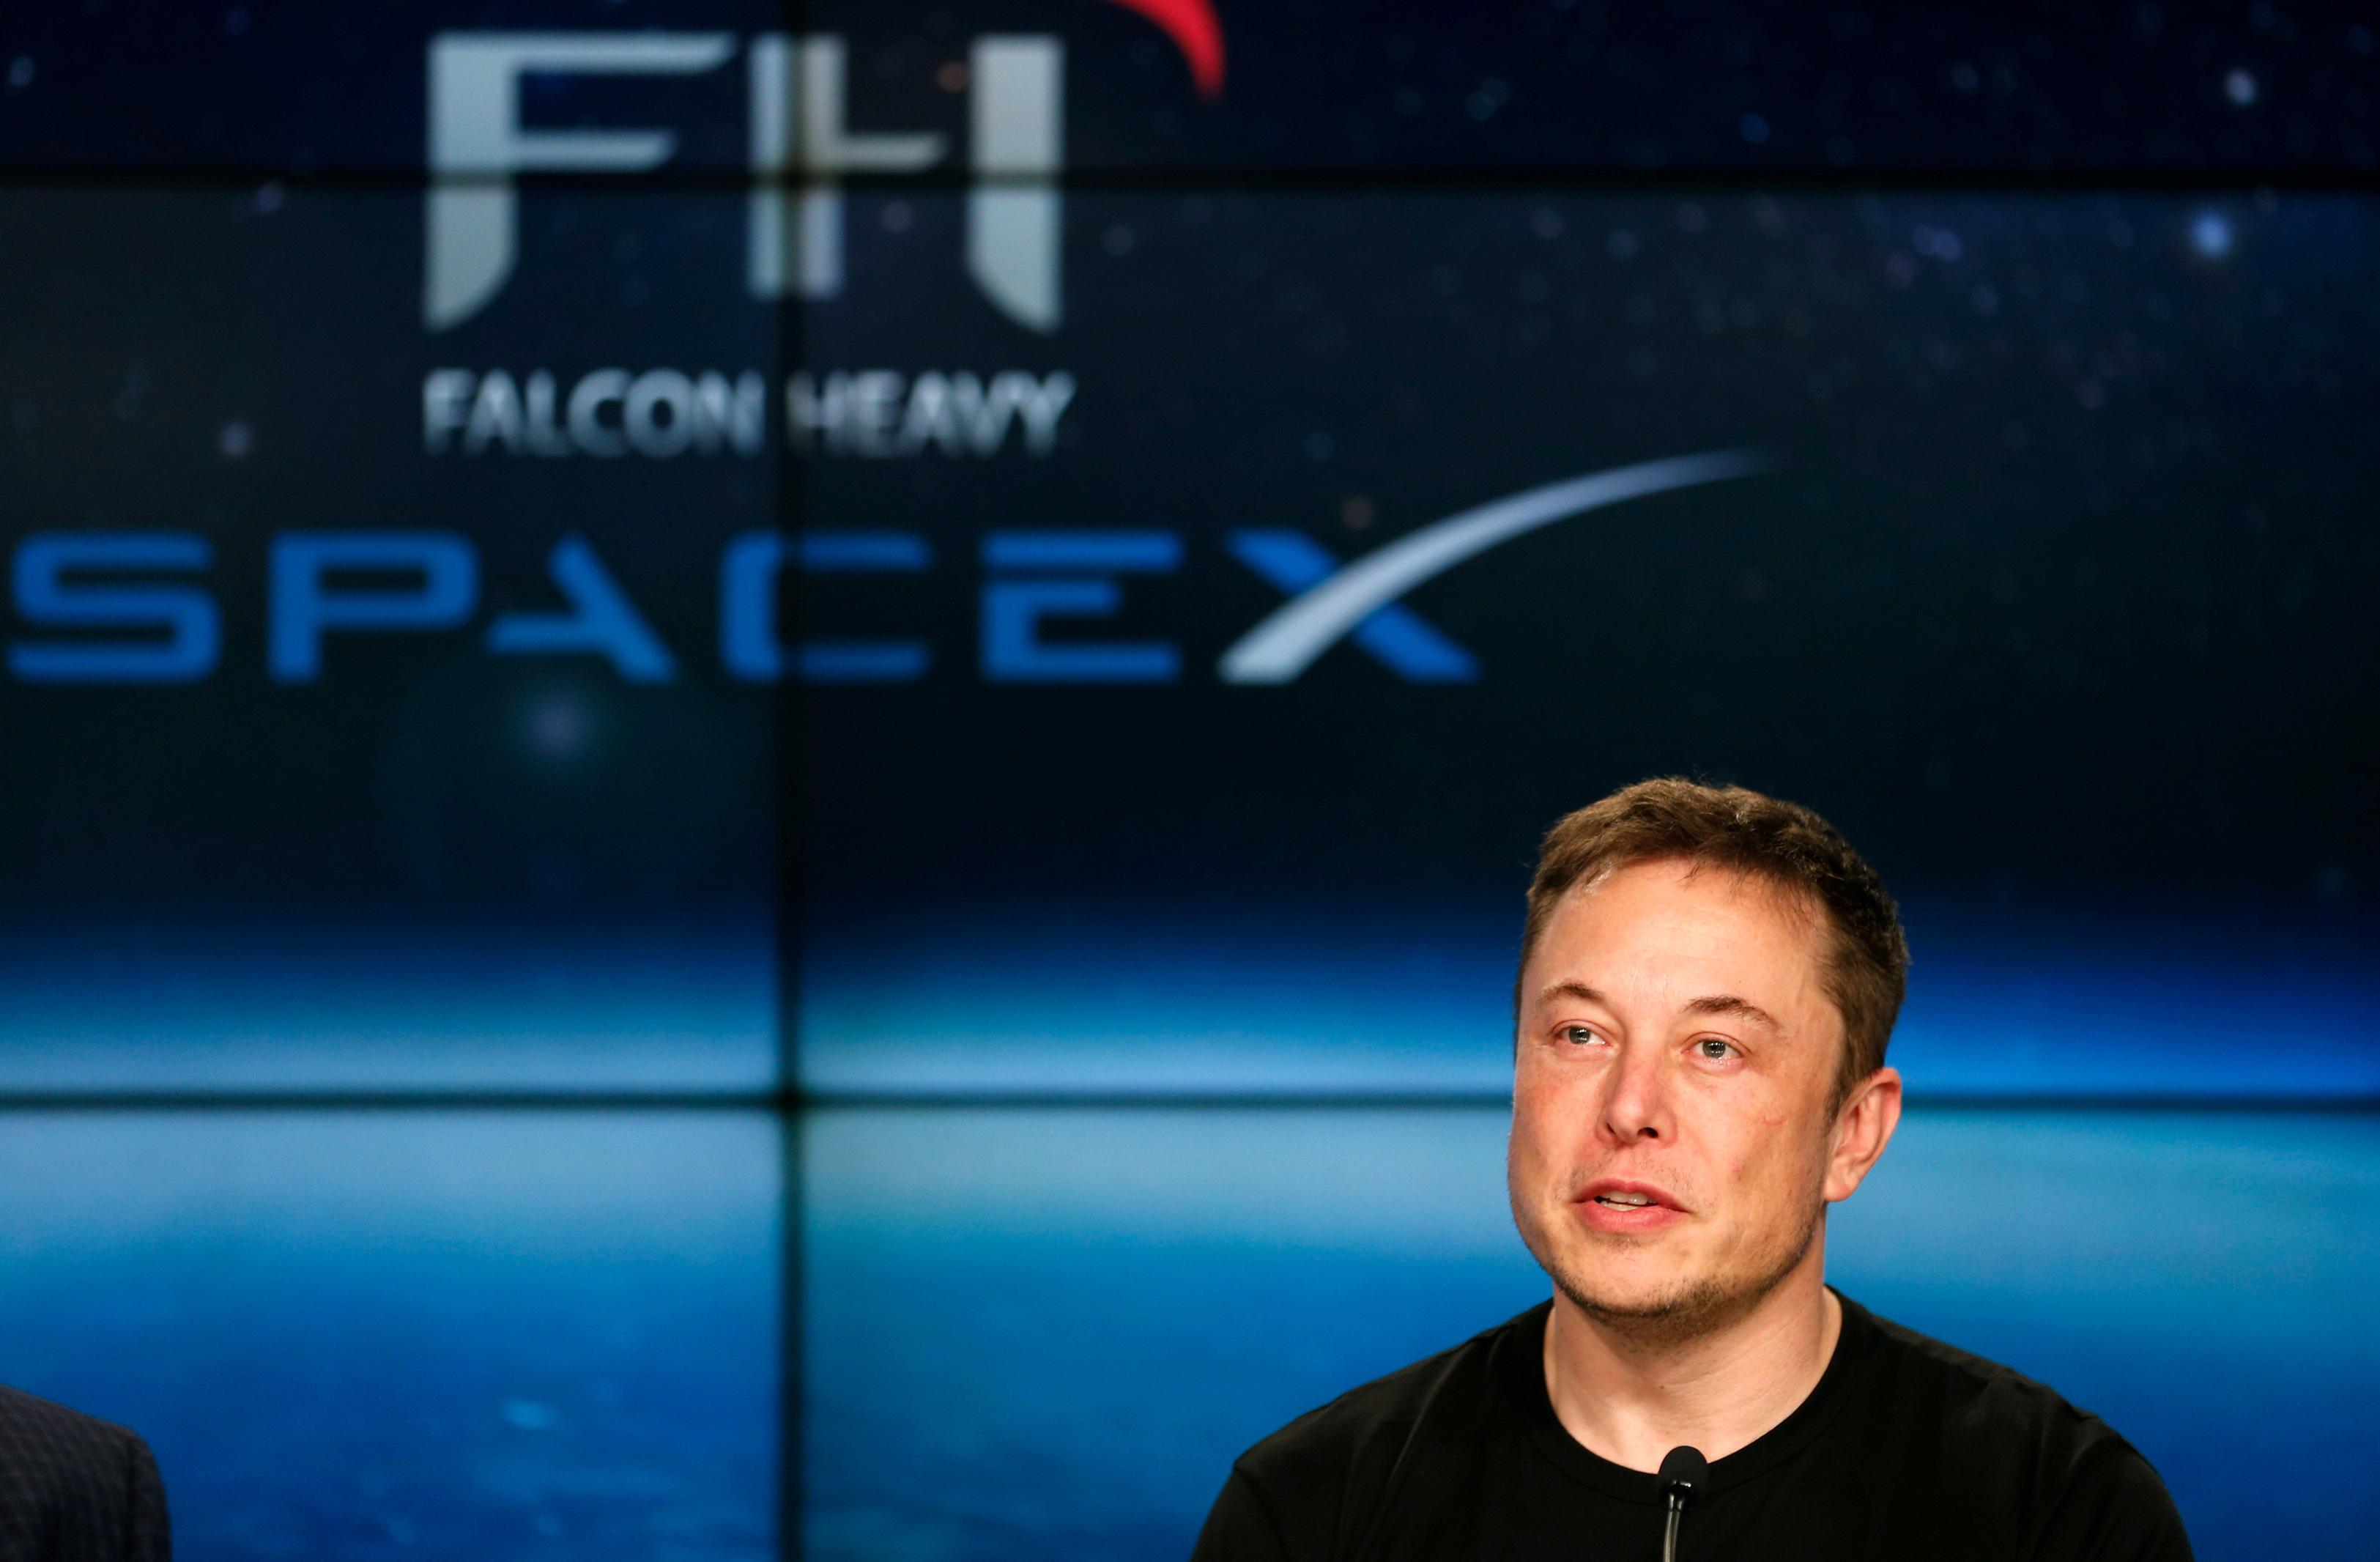 SpaceX founder Elon Musk speaks at a press conference following the first launch of a SpaceX Falcon Heavy rocket at the Kennedy Space Center in Cape Canaveral, Florida, U.S., February 6, 2018. REUTERS/Joe Skipper/File Photo - RC15B6B3A870